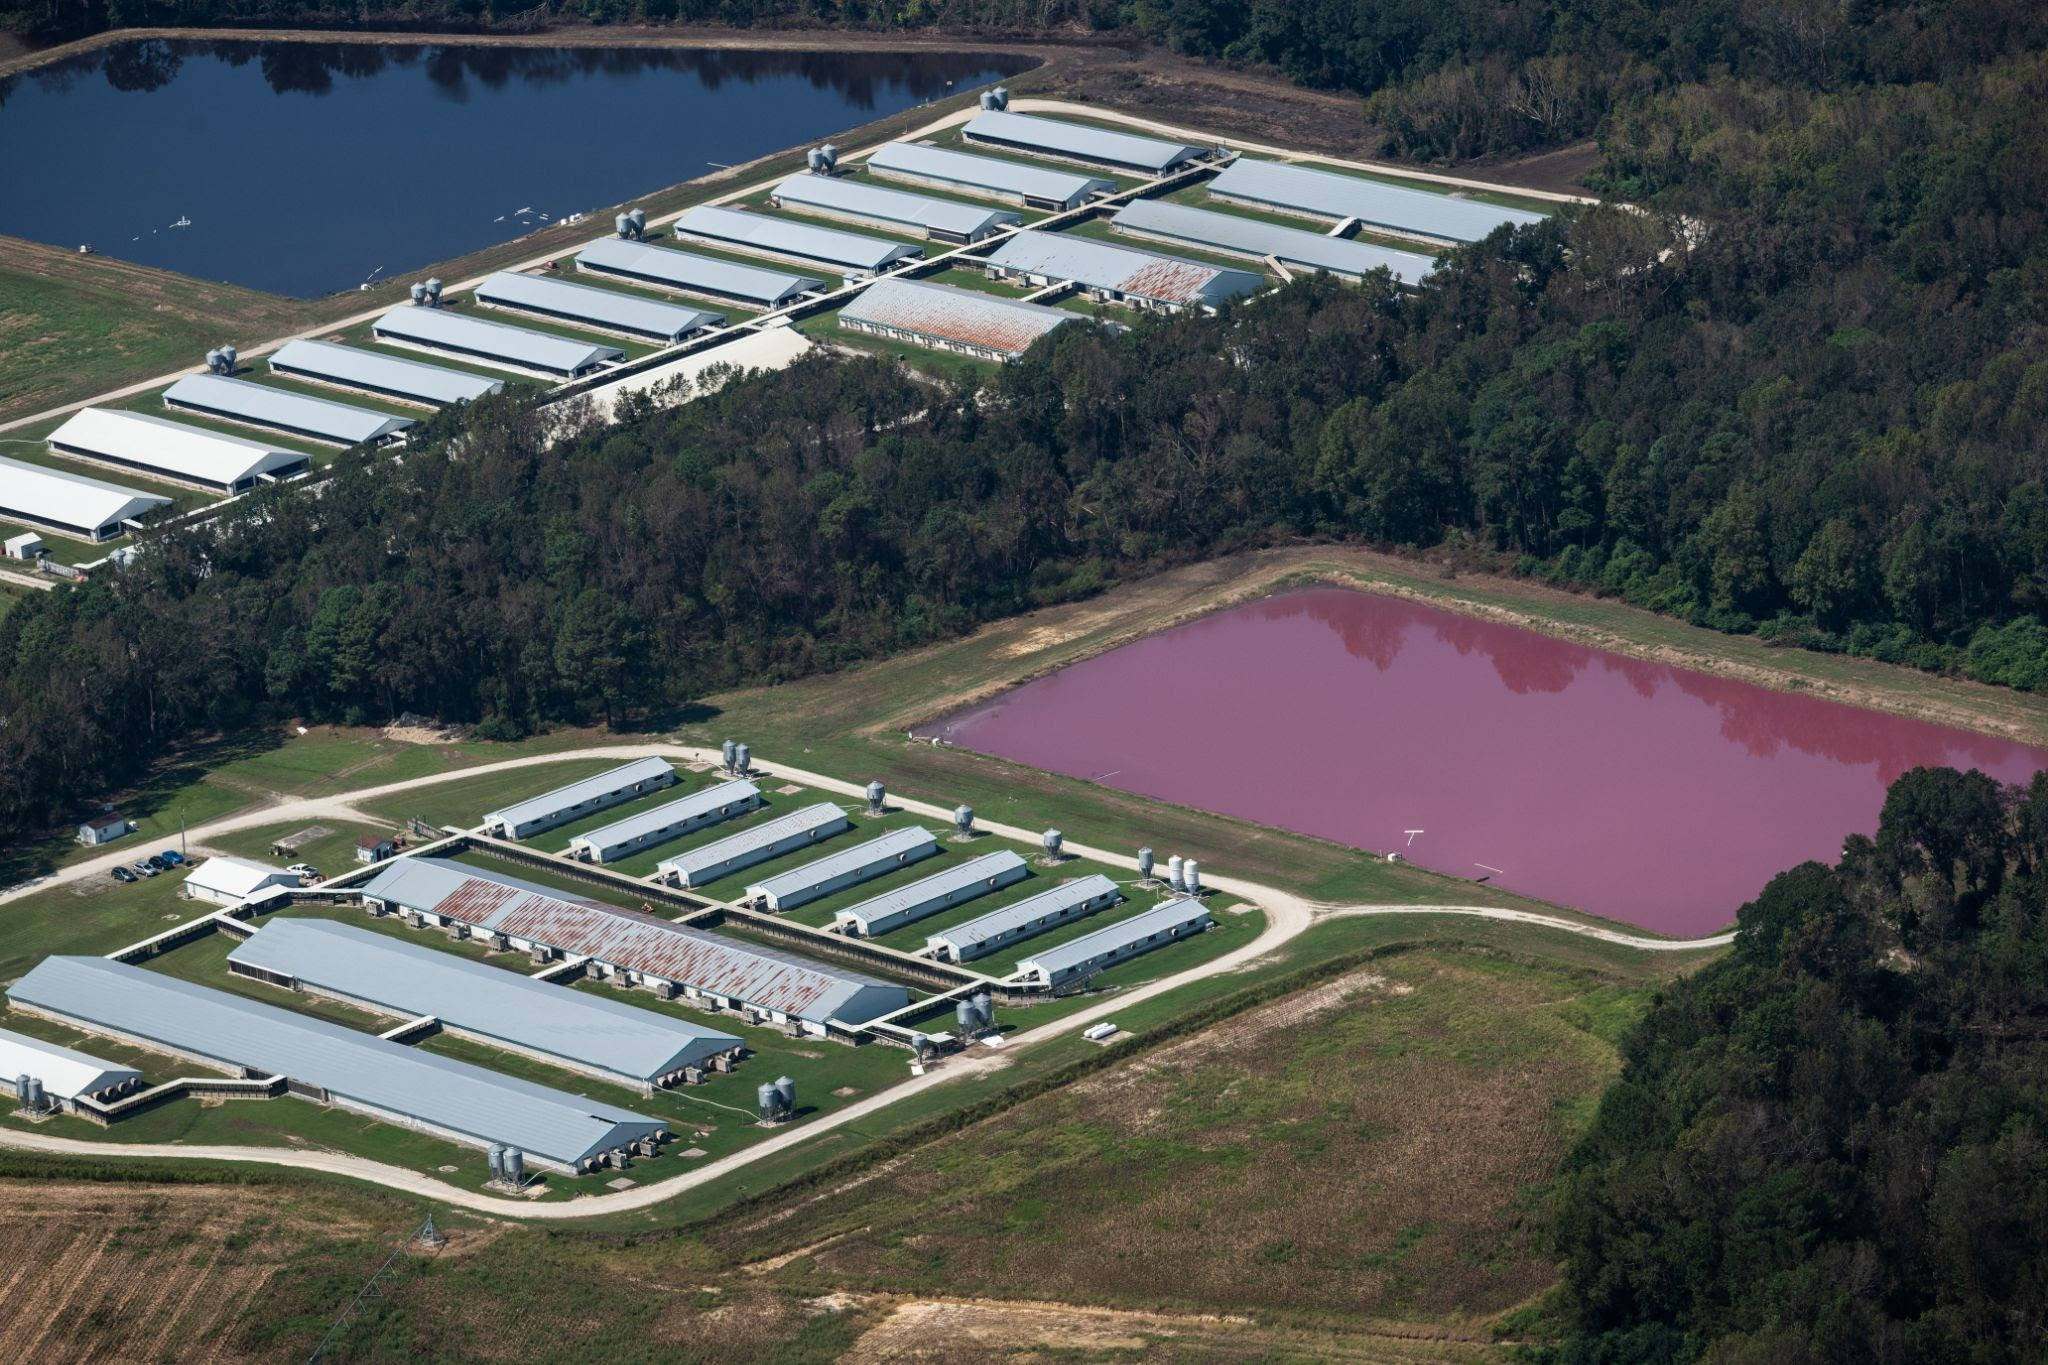 Aerial view of CAFO barns and manure lagoons in North Carolina (Image by Jo-Anne McArthur from We Animals)